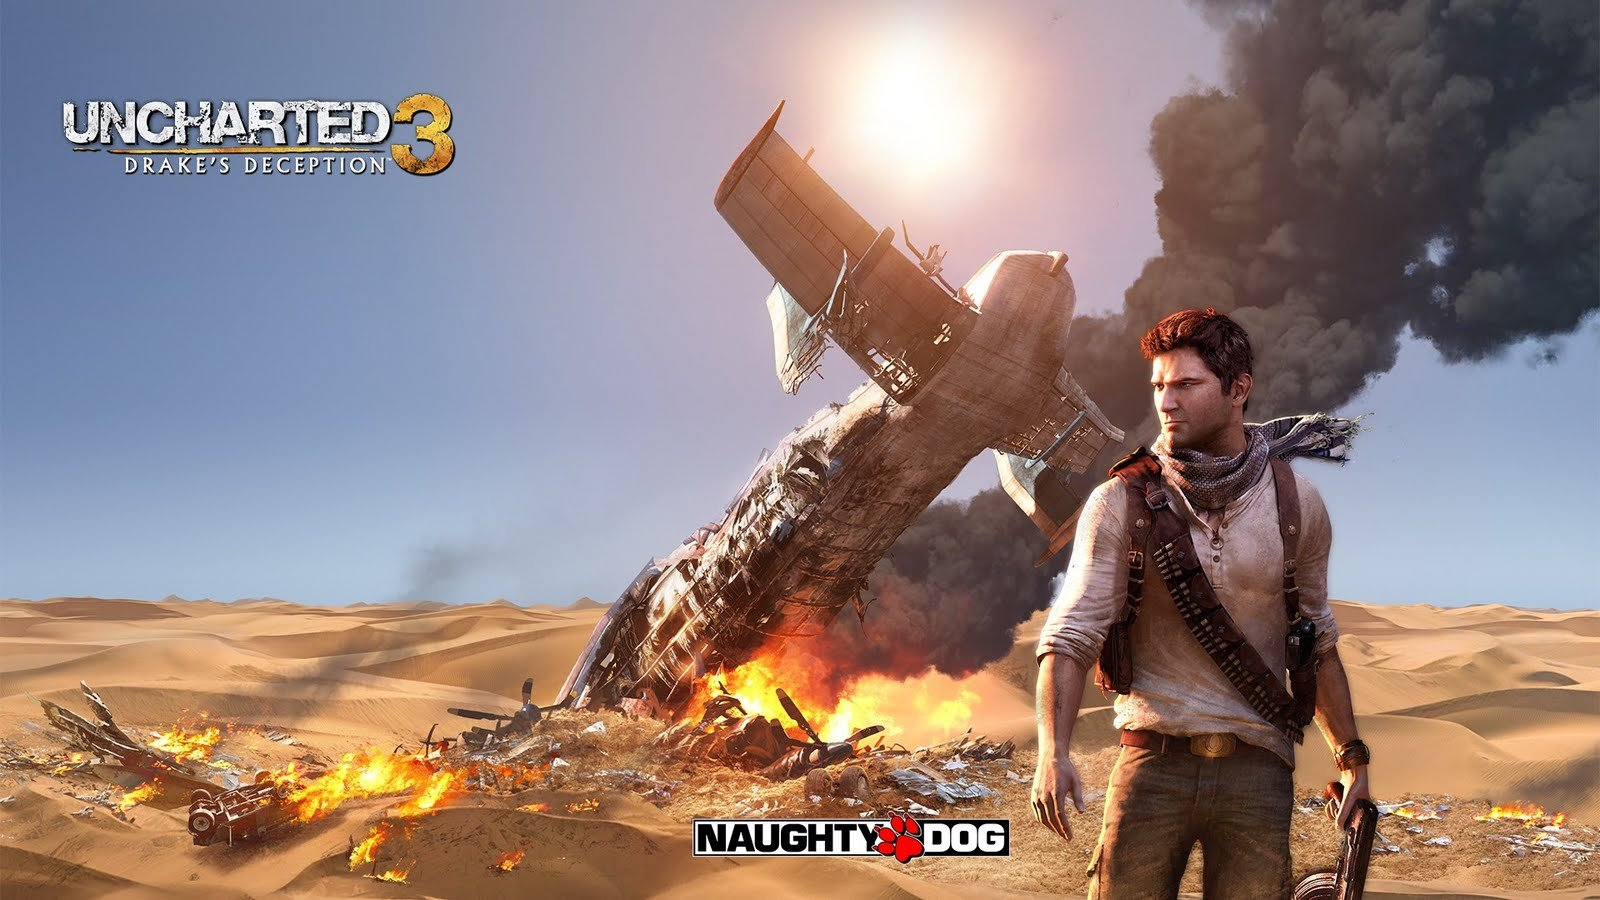 Download hd 1600x900 Uncharted 3: Drake's Deception PC wallpaper ID:497888 for free